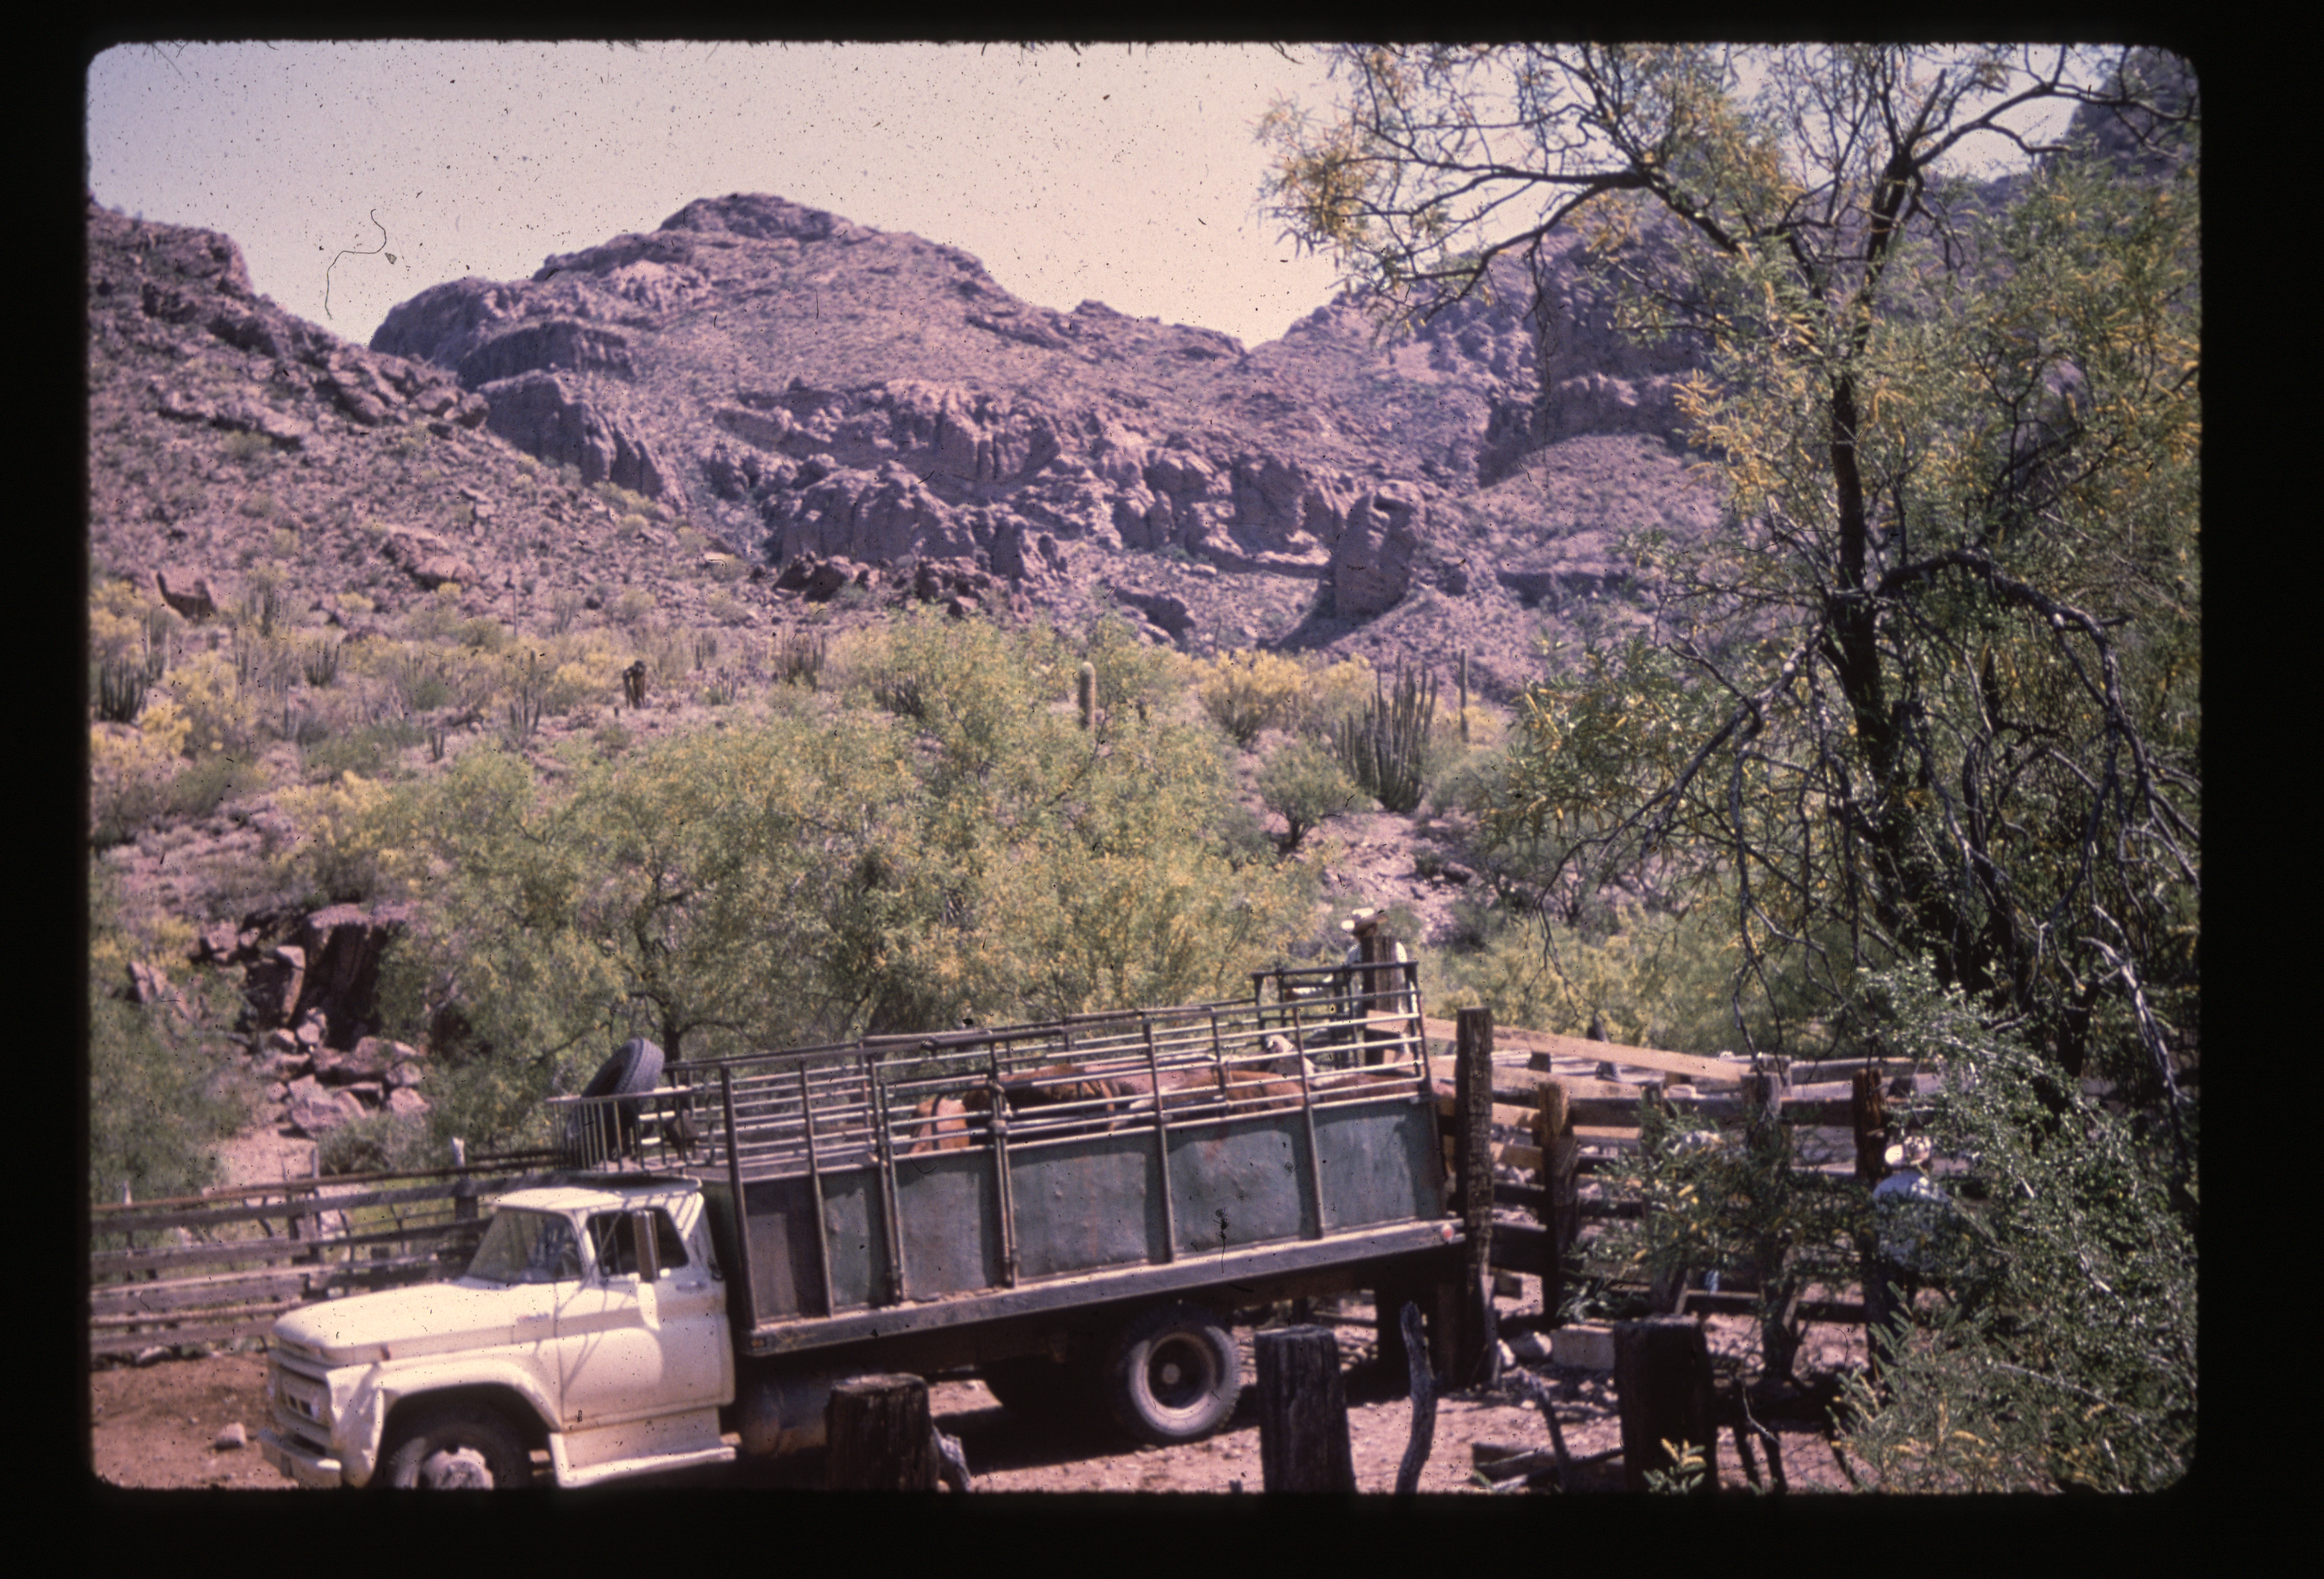 Final cattle being removed, 1972